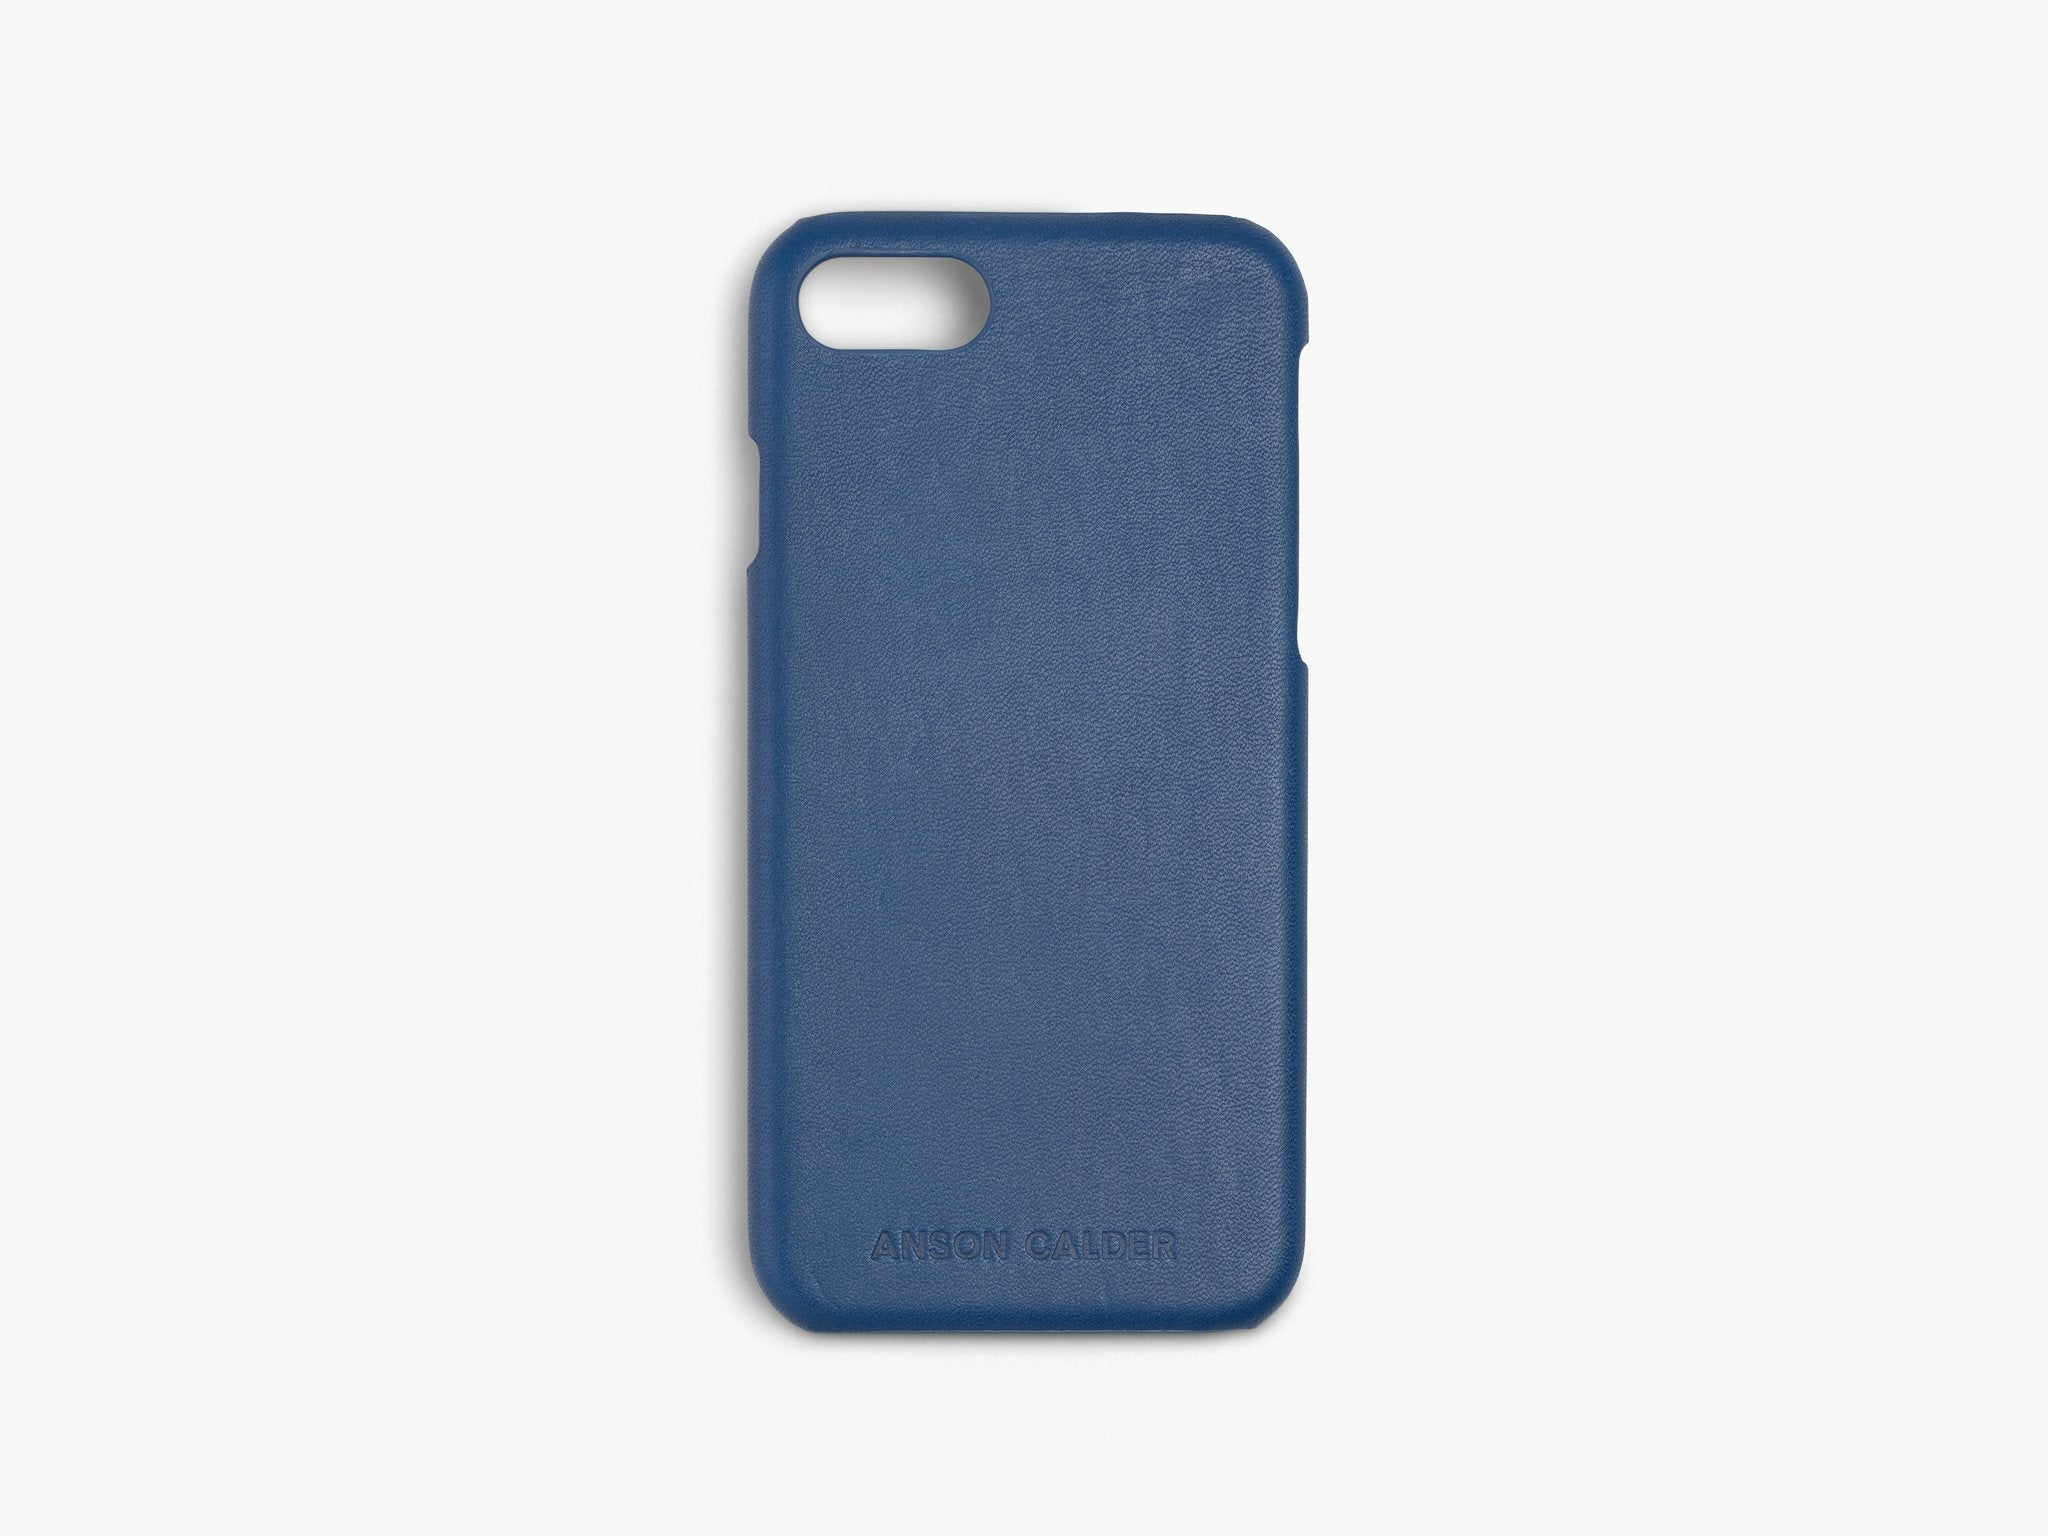 CALFSKIN iPHONE CASE CASES ANSON CALDER iPhone 6 / 6S _Cobalt